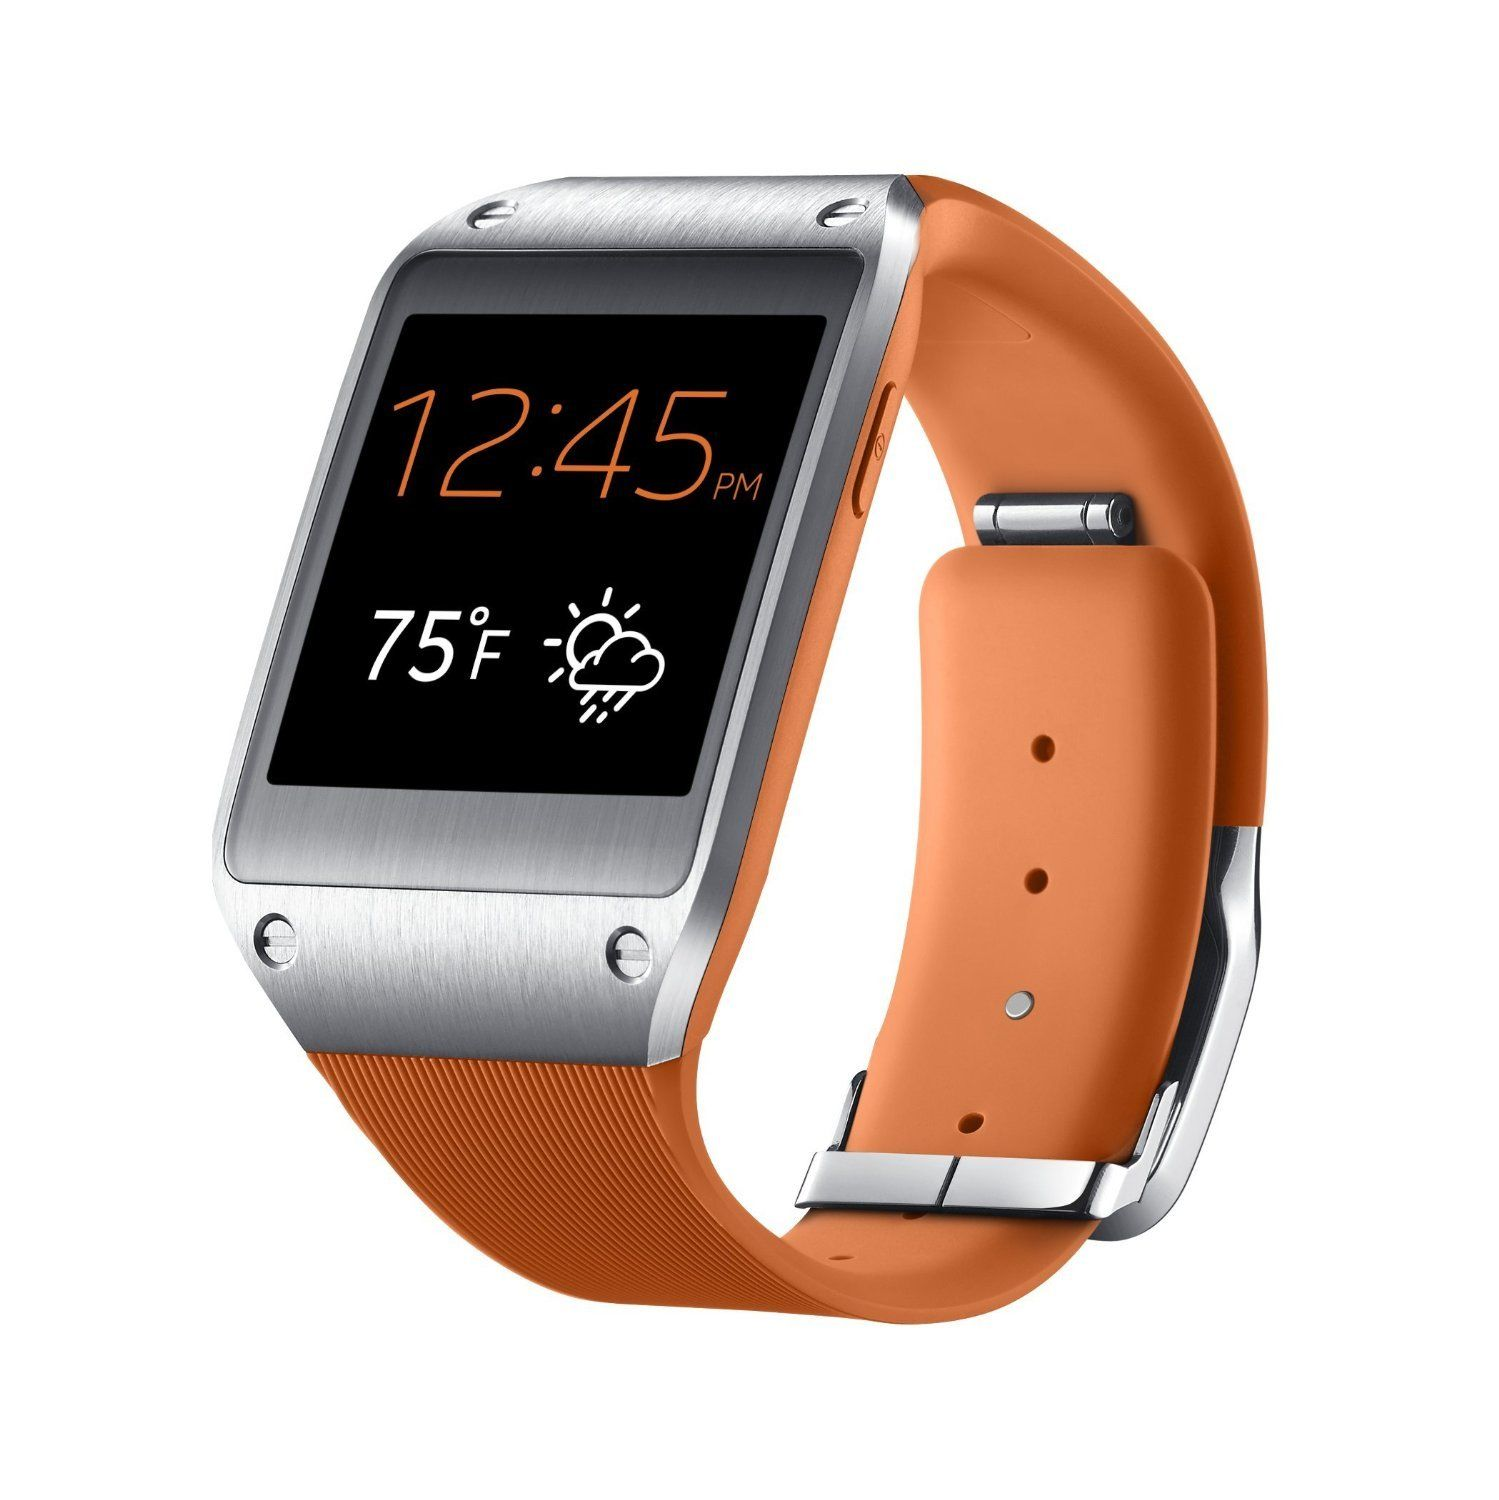 "SAMSUNG GALAXY GEAR SM-V700 SMARTWATCH ORANGE 1.63"" BT ..."